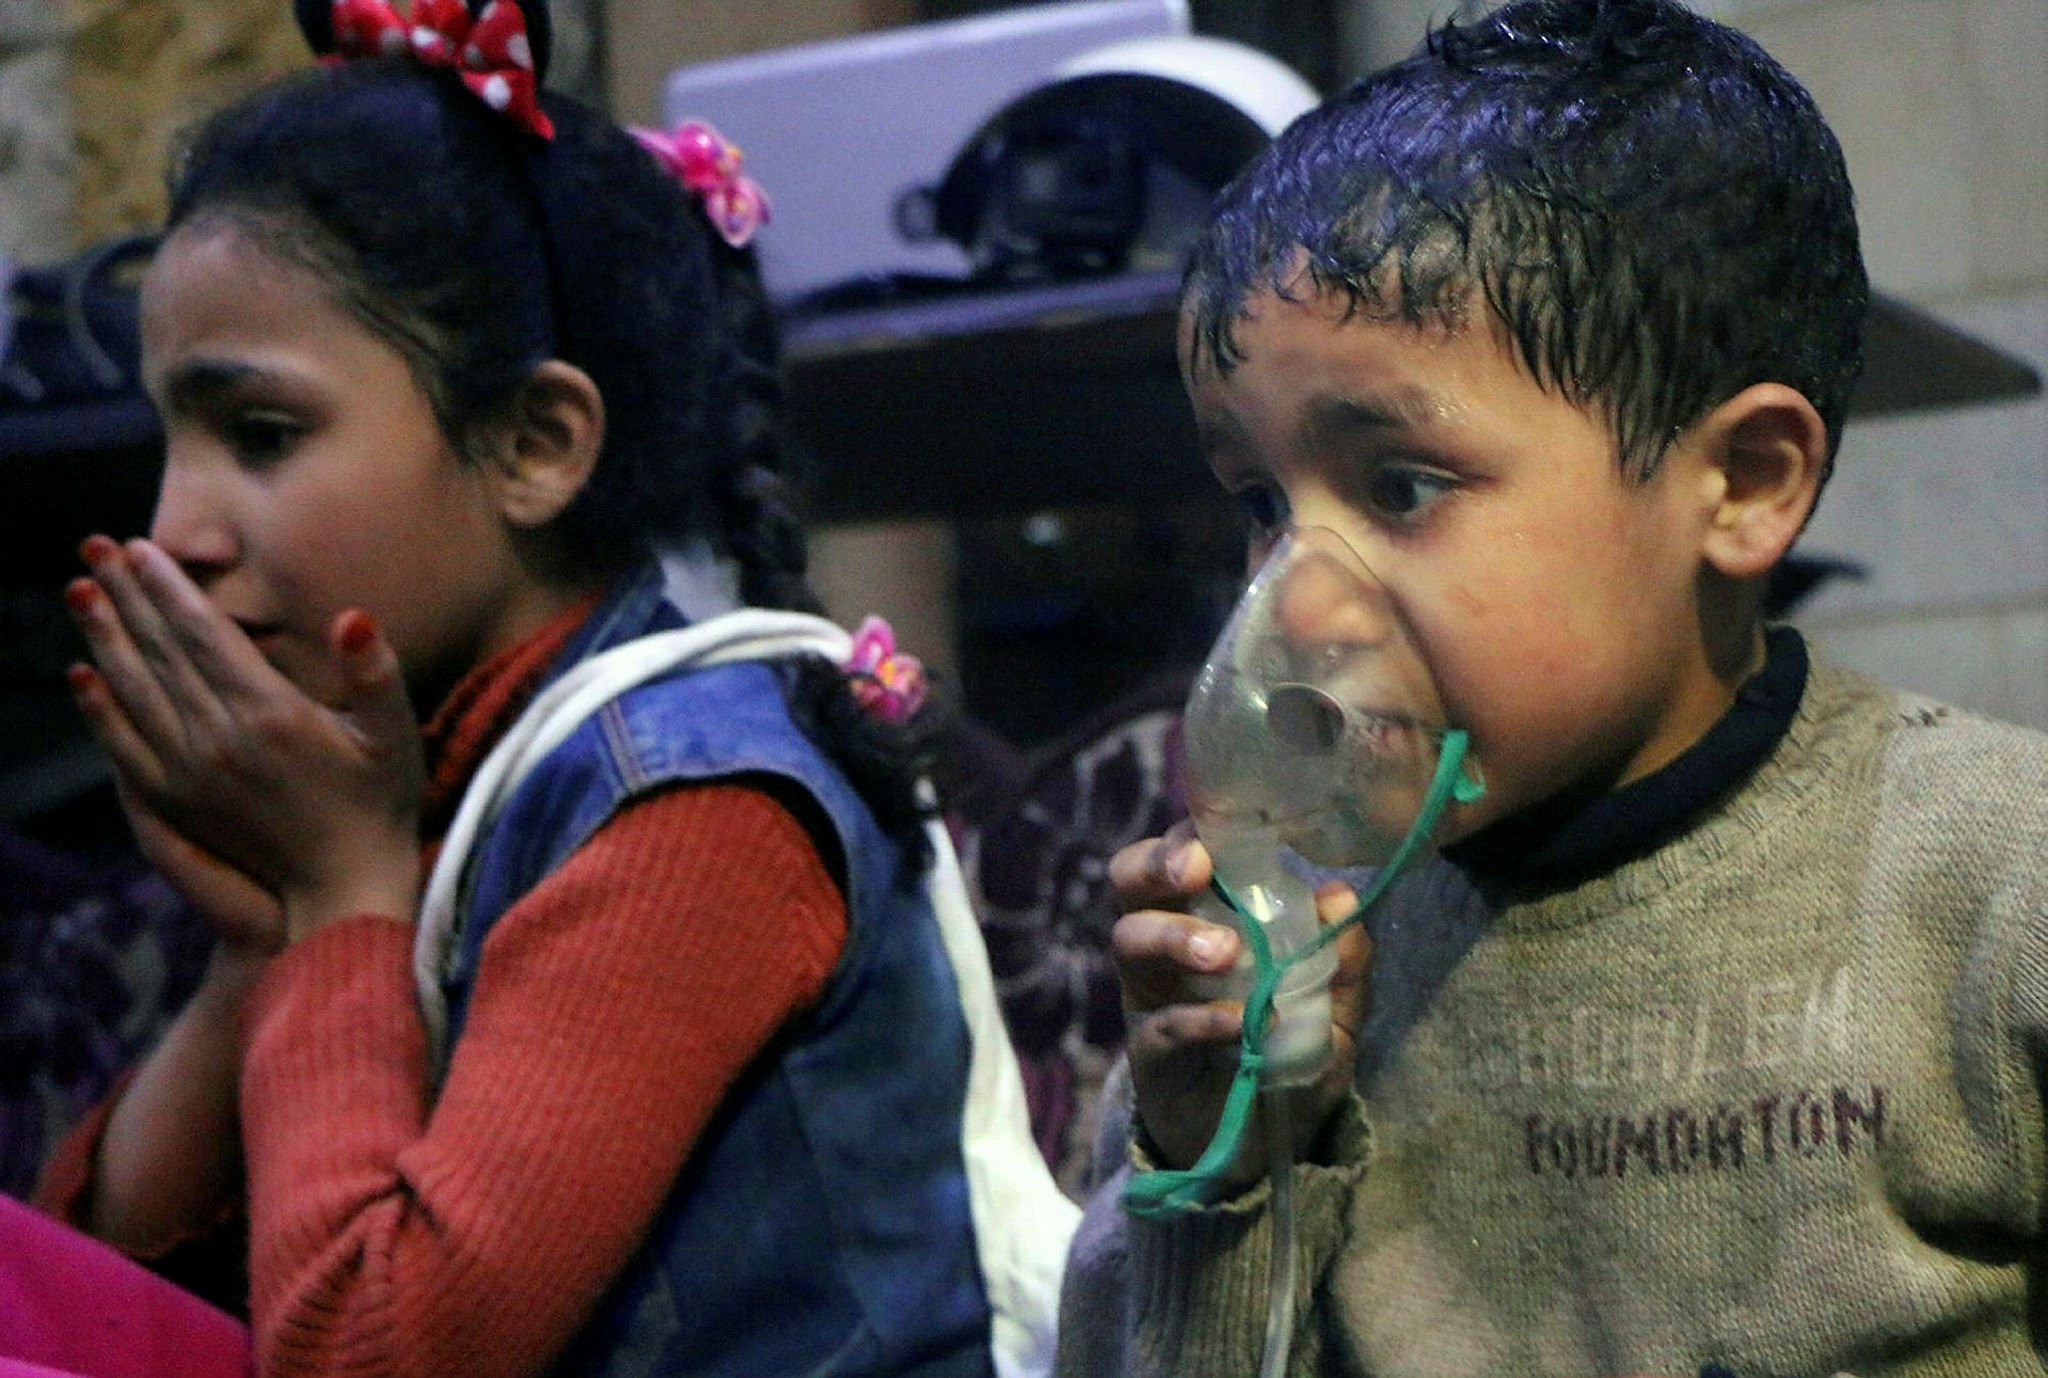 A Syrian child receives oxygen through a respirator following a chemical attack in the opposition-held town of Douma, April 8. (FILE Photo)